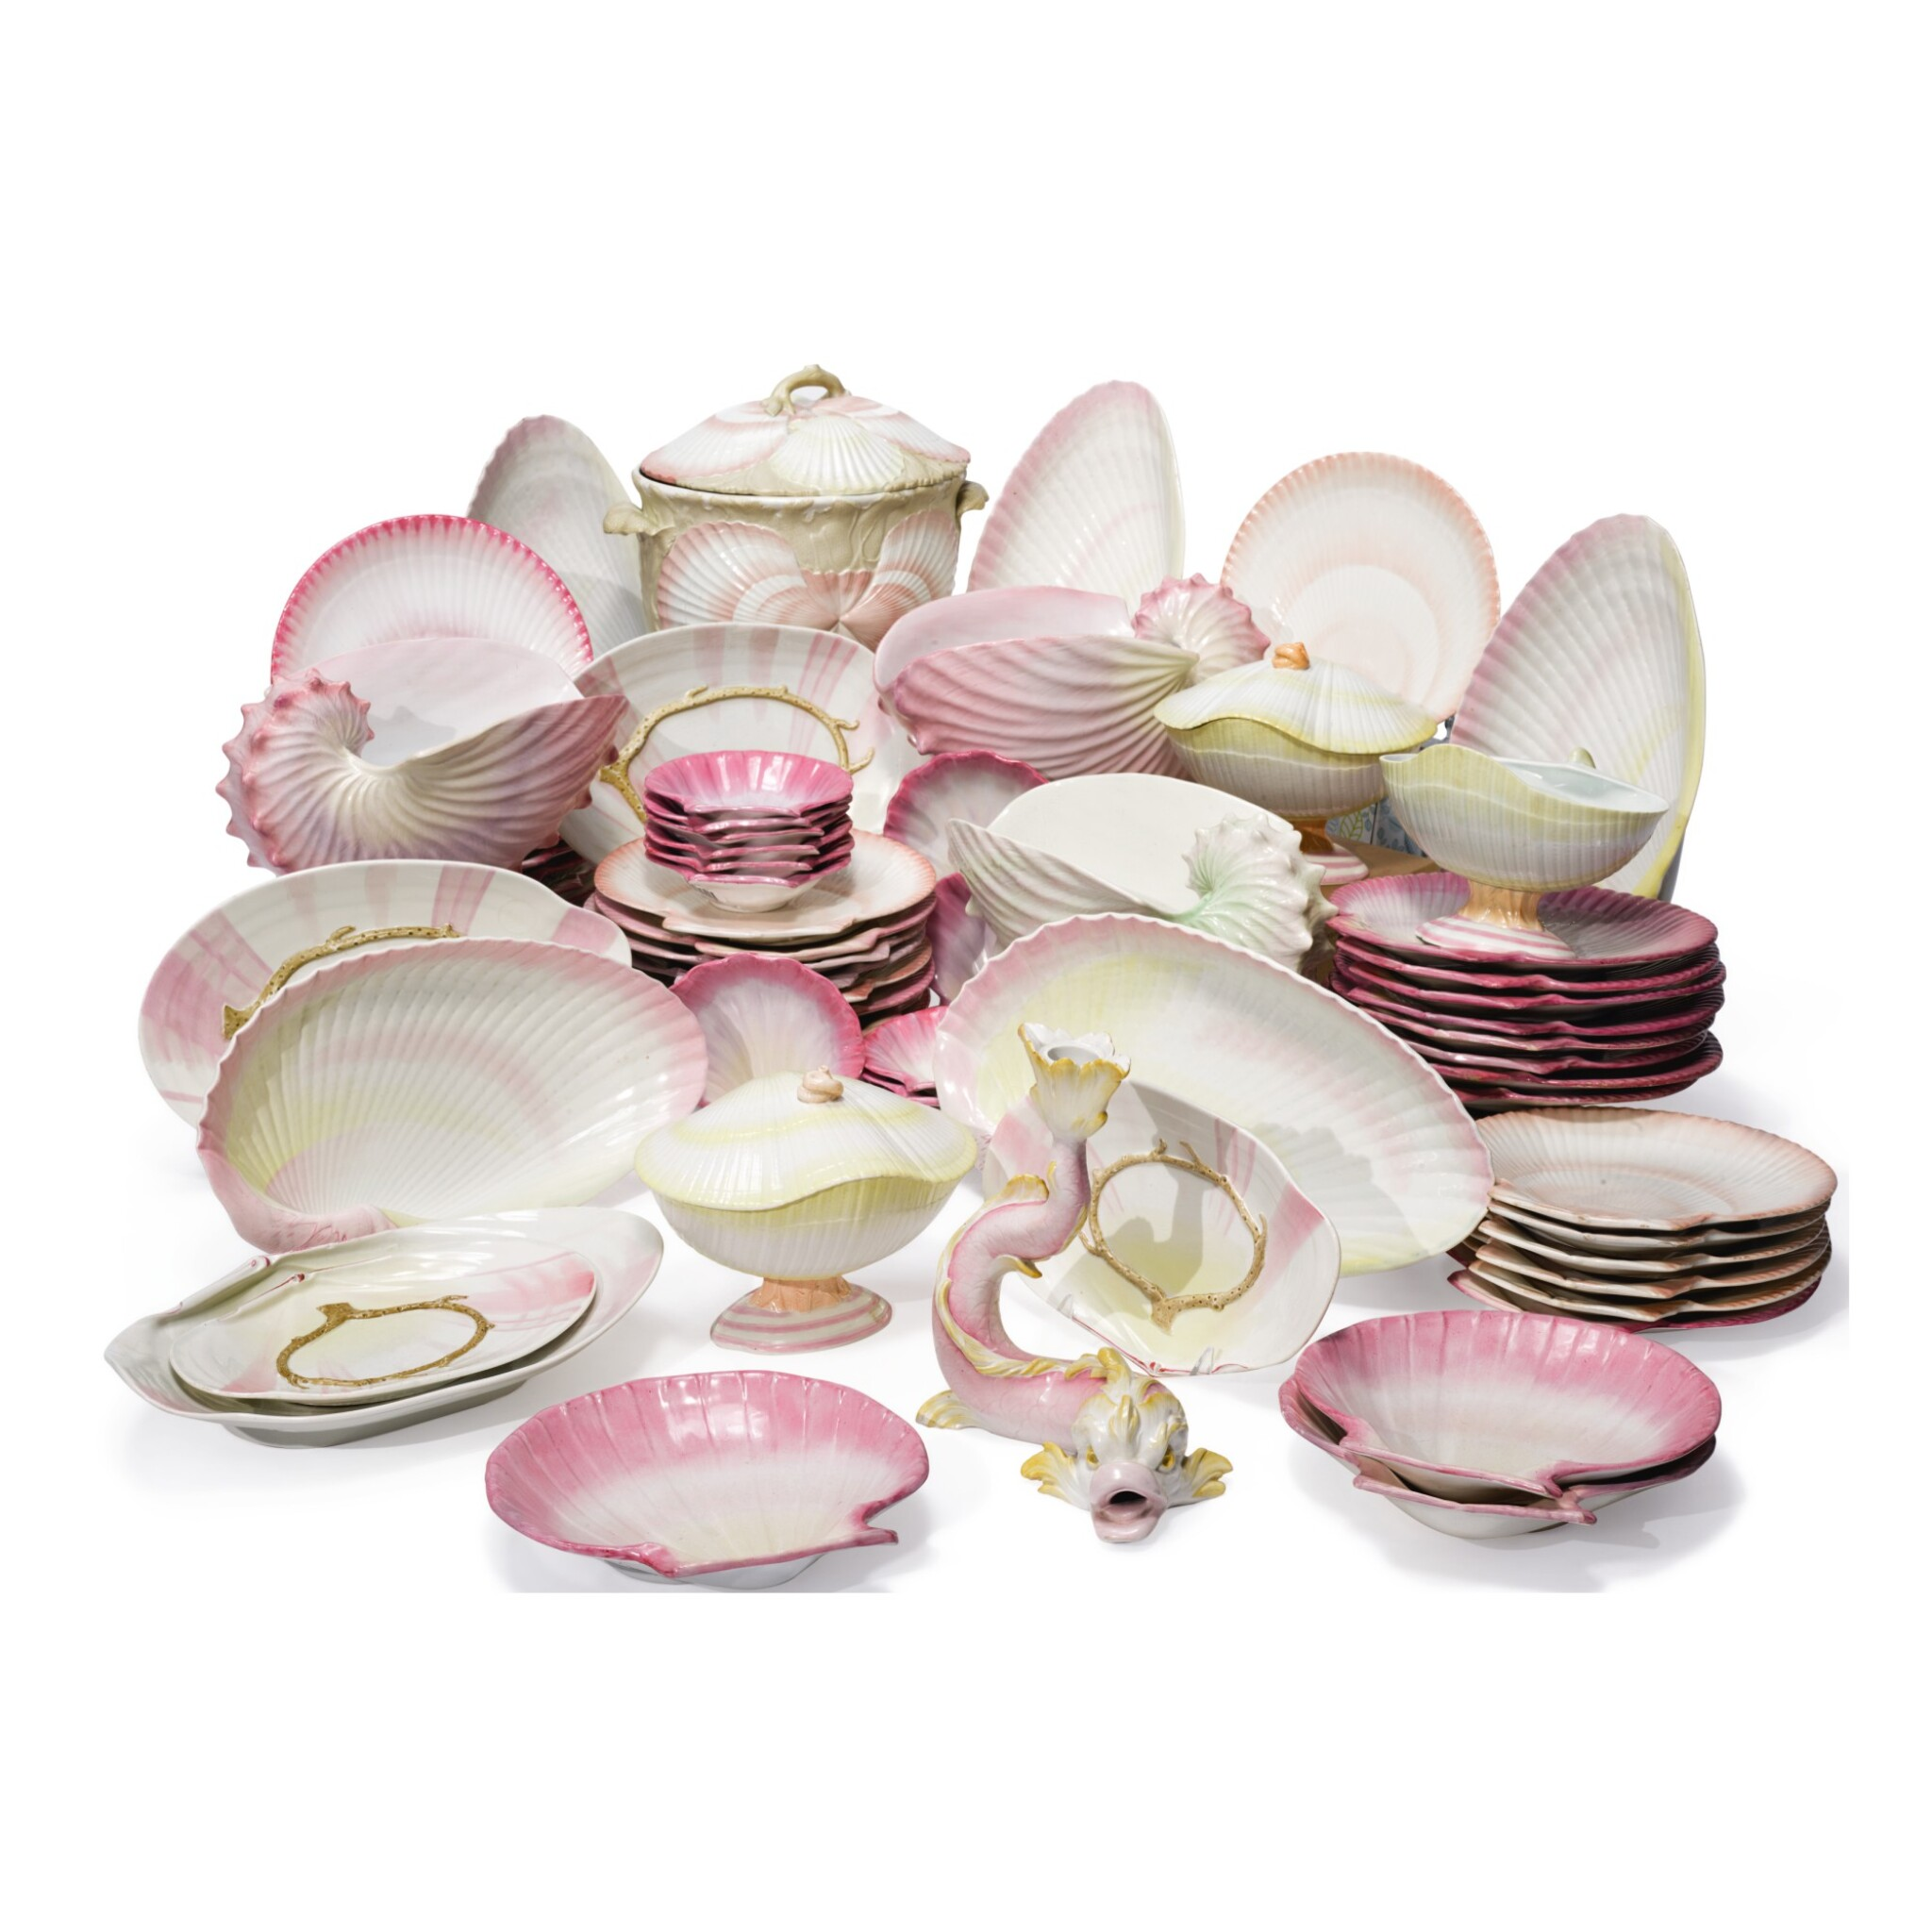 View full screen - View 1 of Lot 493. AN EXTENSIVE ASSEMBLED WEDGWOOD 'WREATHED SHELL' PART-DESSERT SERVICE, CIRCA 1820 AND 1864-82.